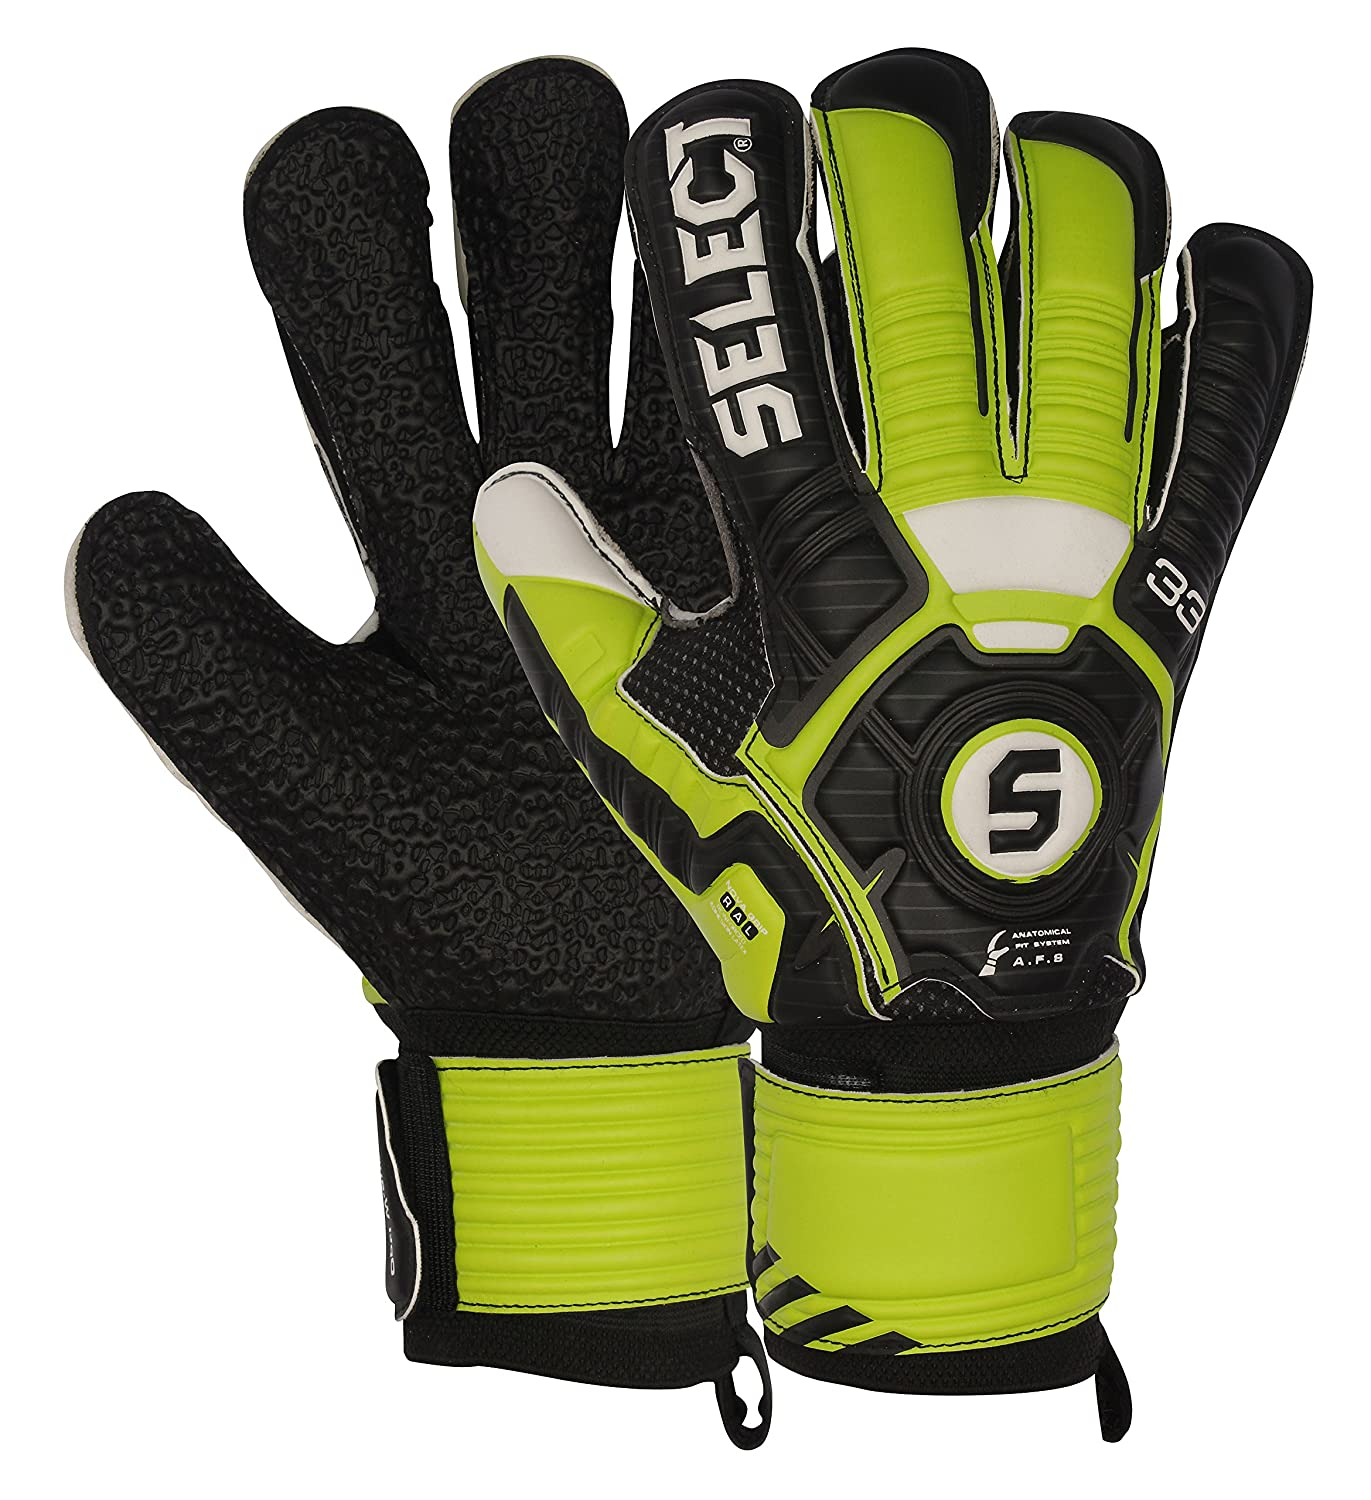 Select 33 Hard Ground Goalkeeper Gloves with Finger Protection